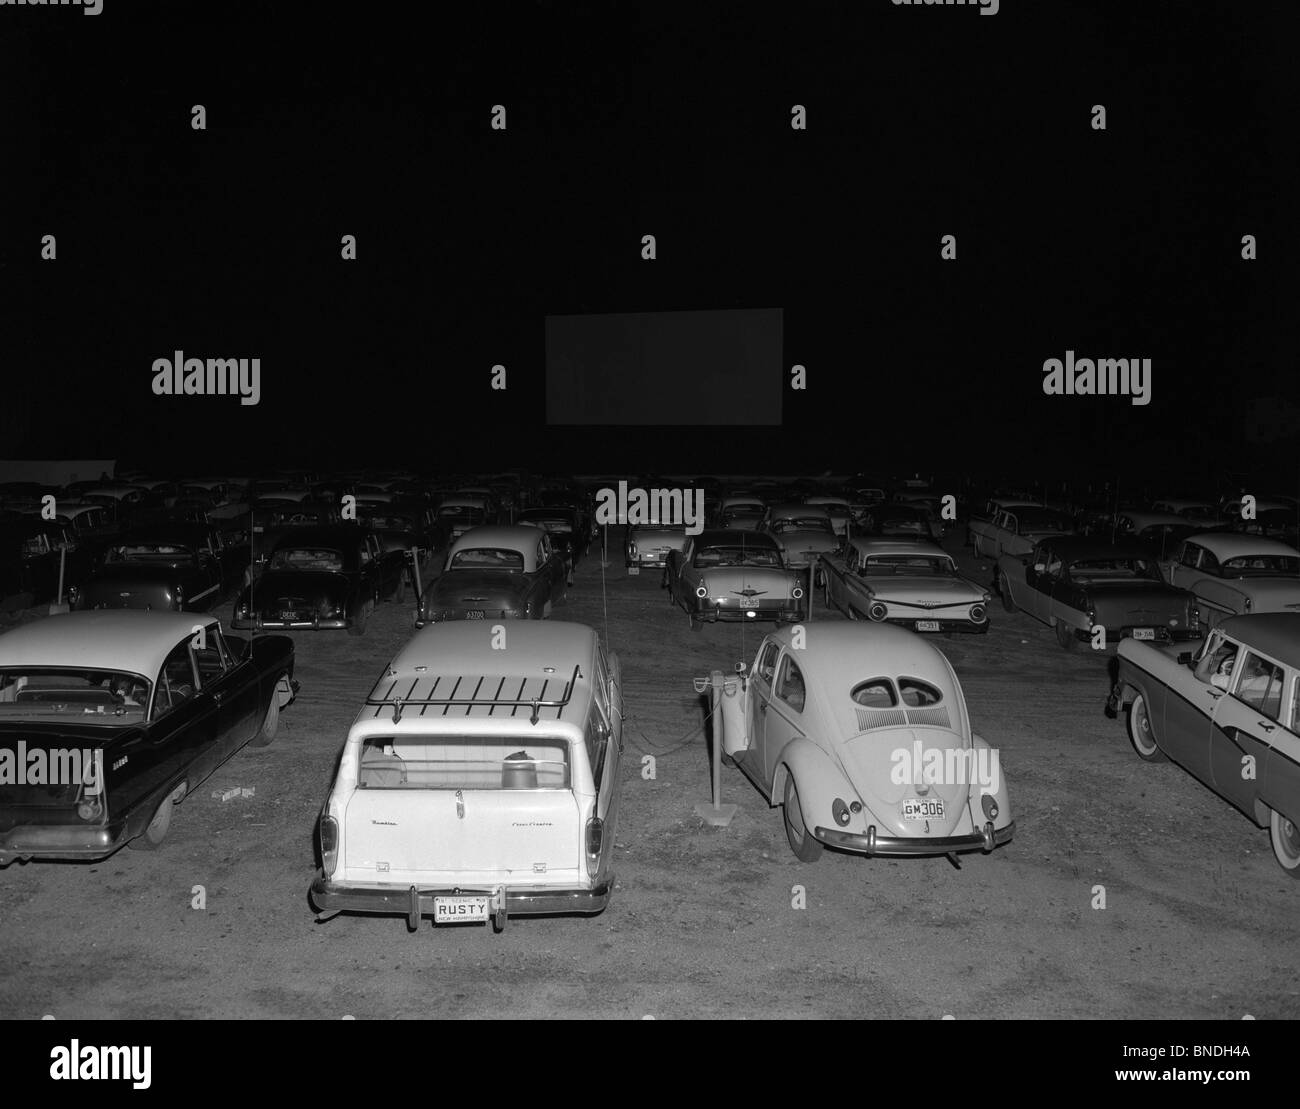 Cars parked at a Drive-in Theater, White River Junction, Vermont, USA Stock Photo